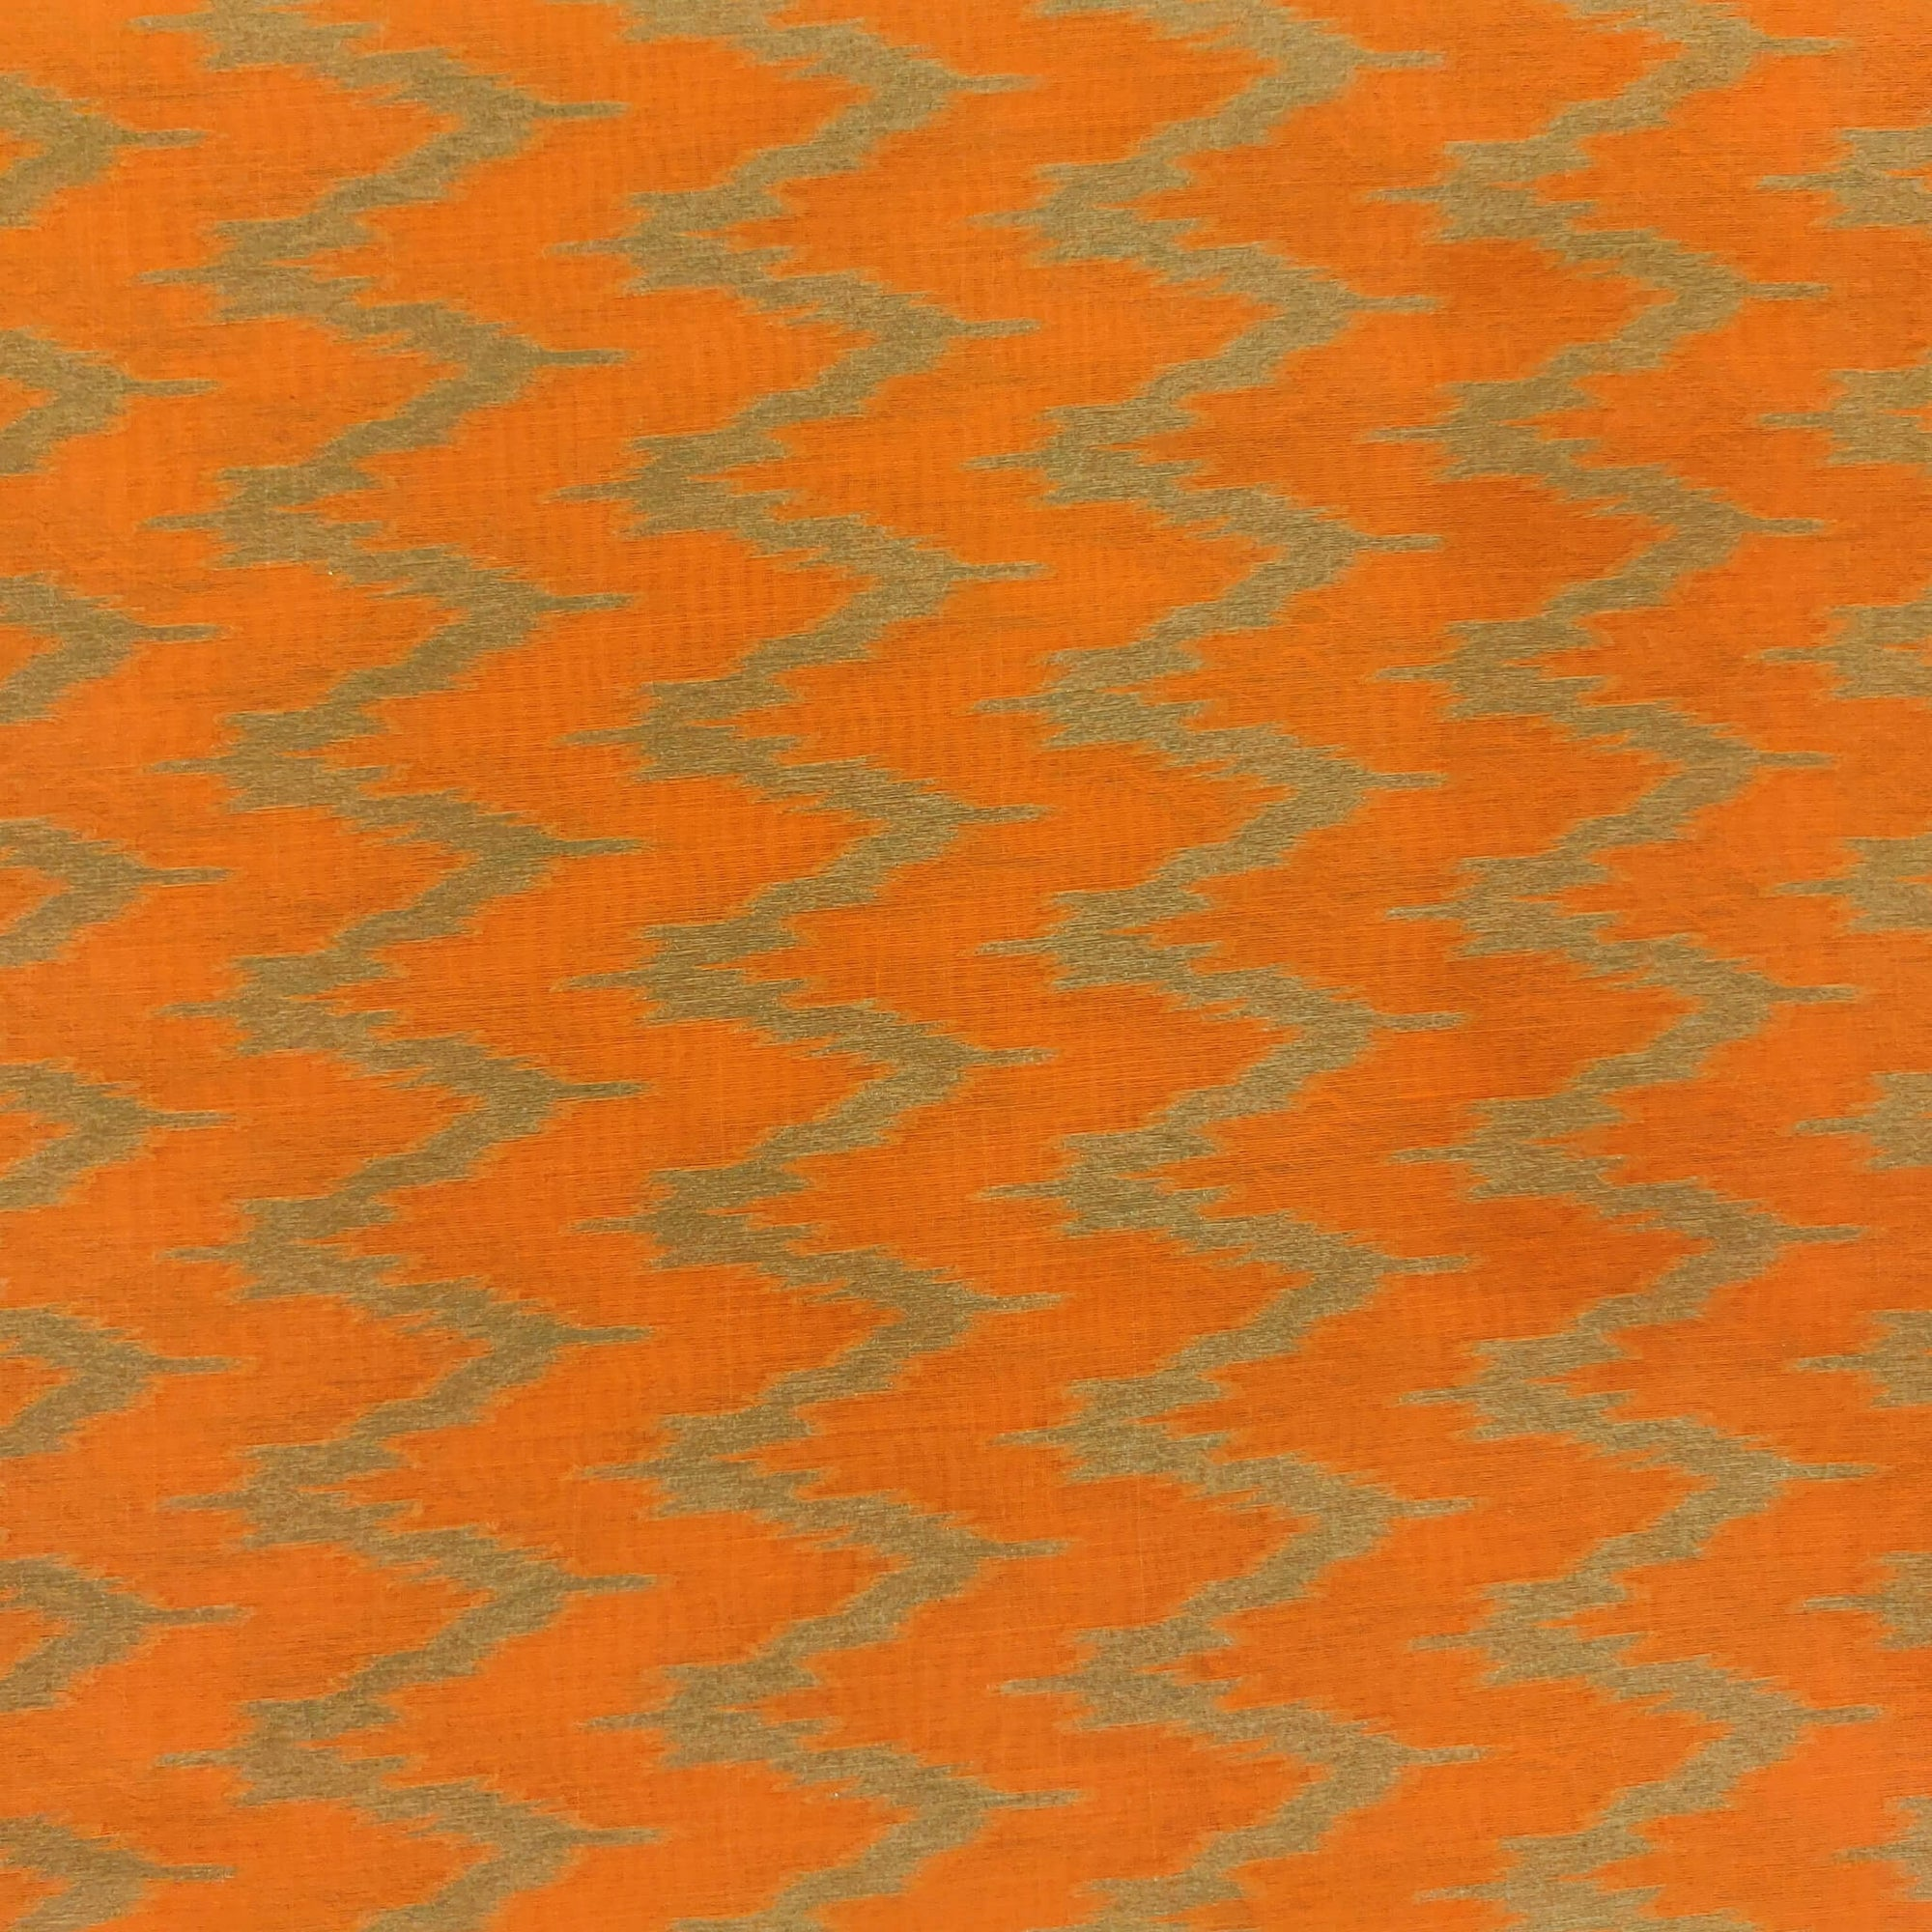 Silk Ikkat Orange With Beige W Weaves Woven Fabric